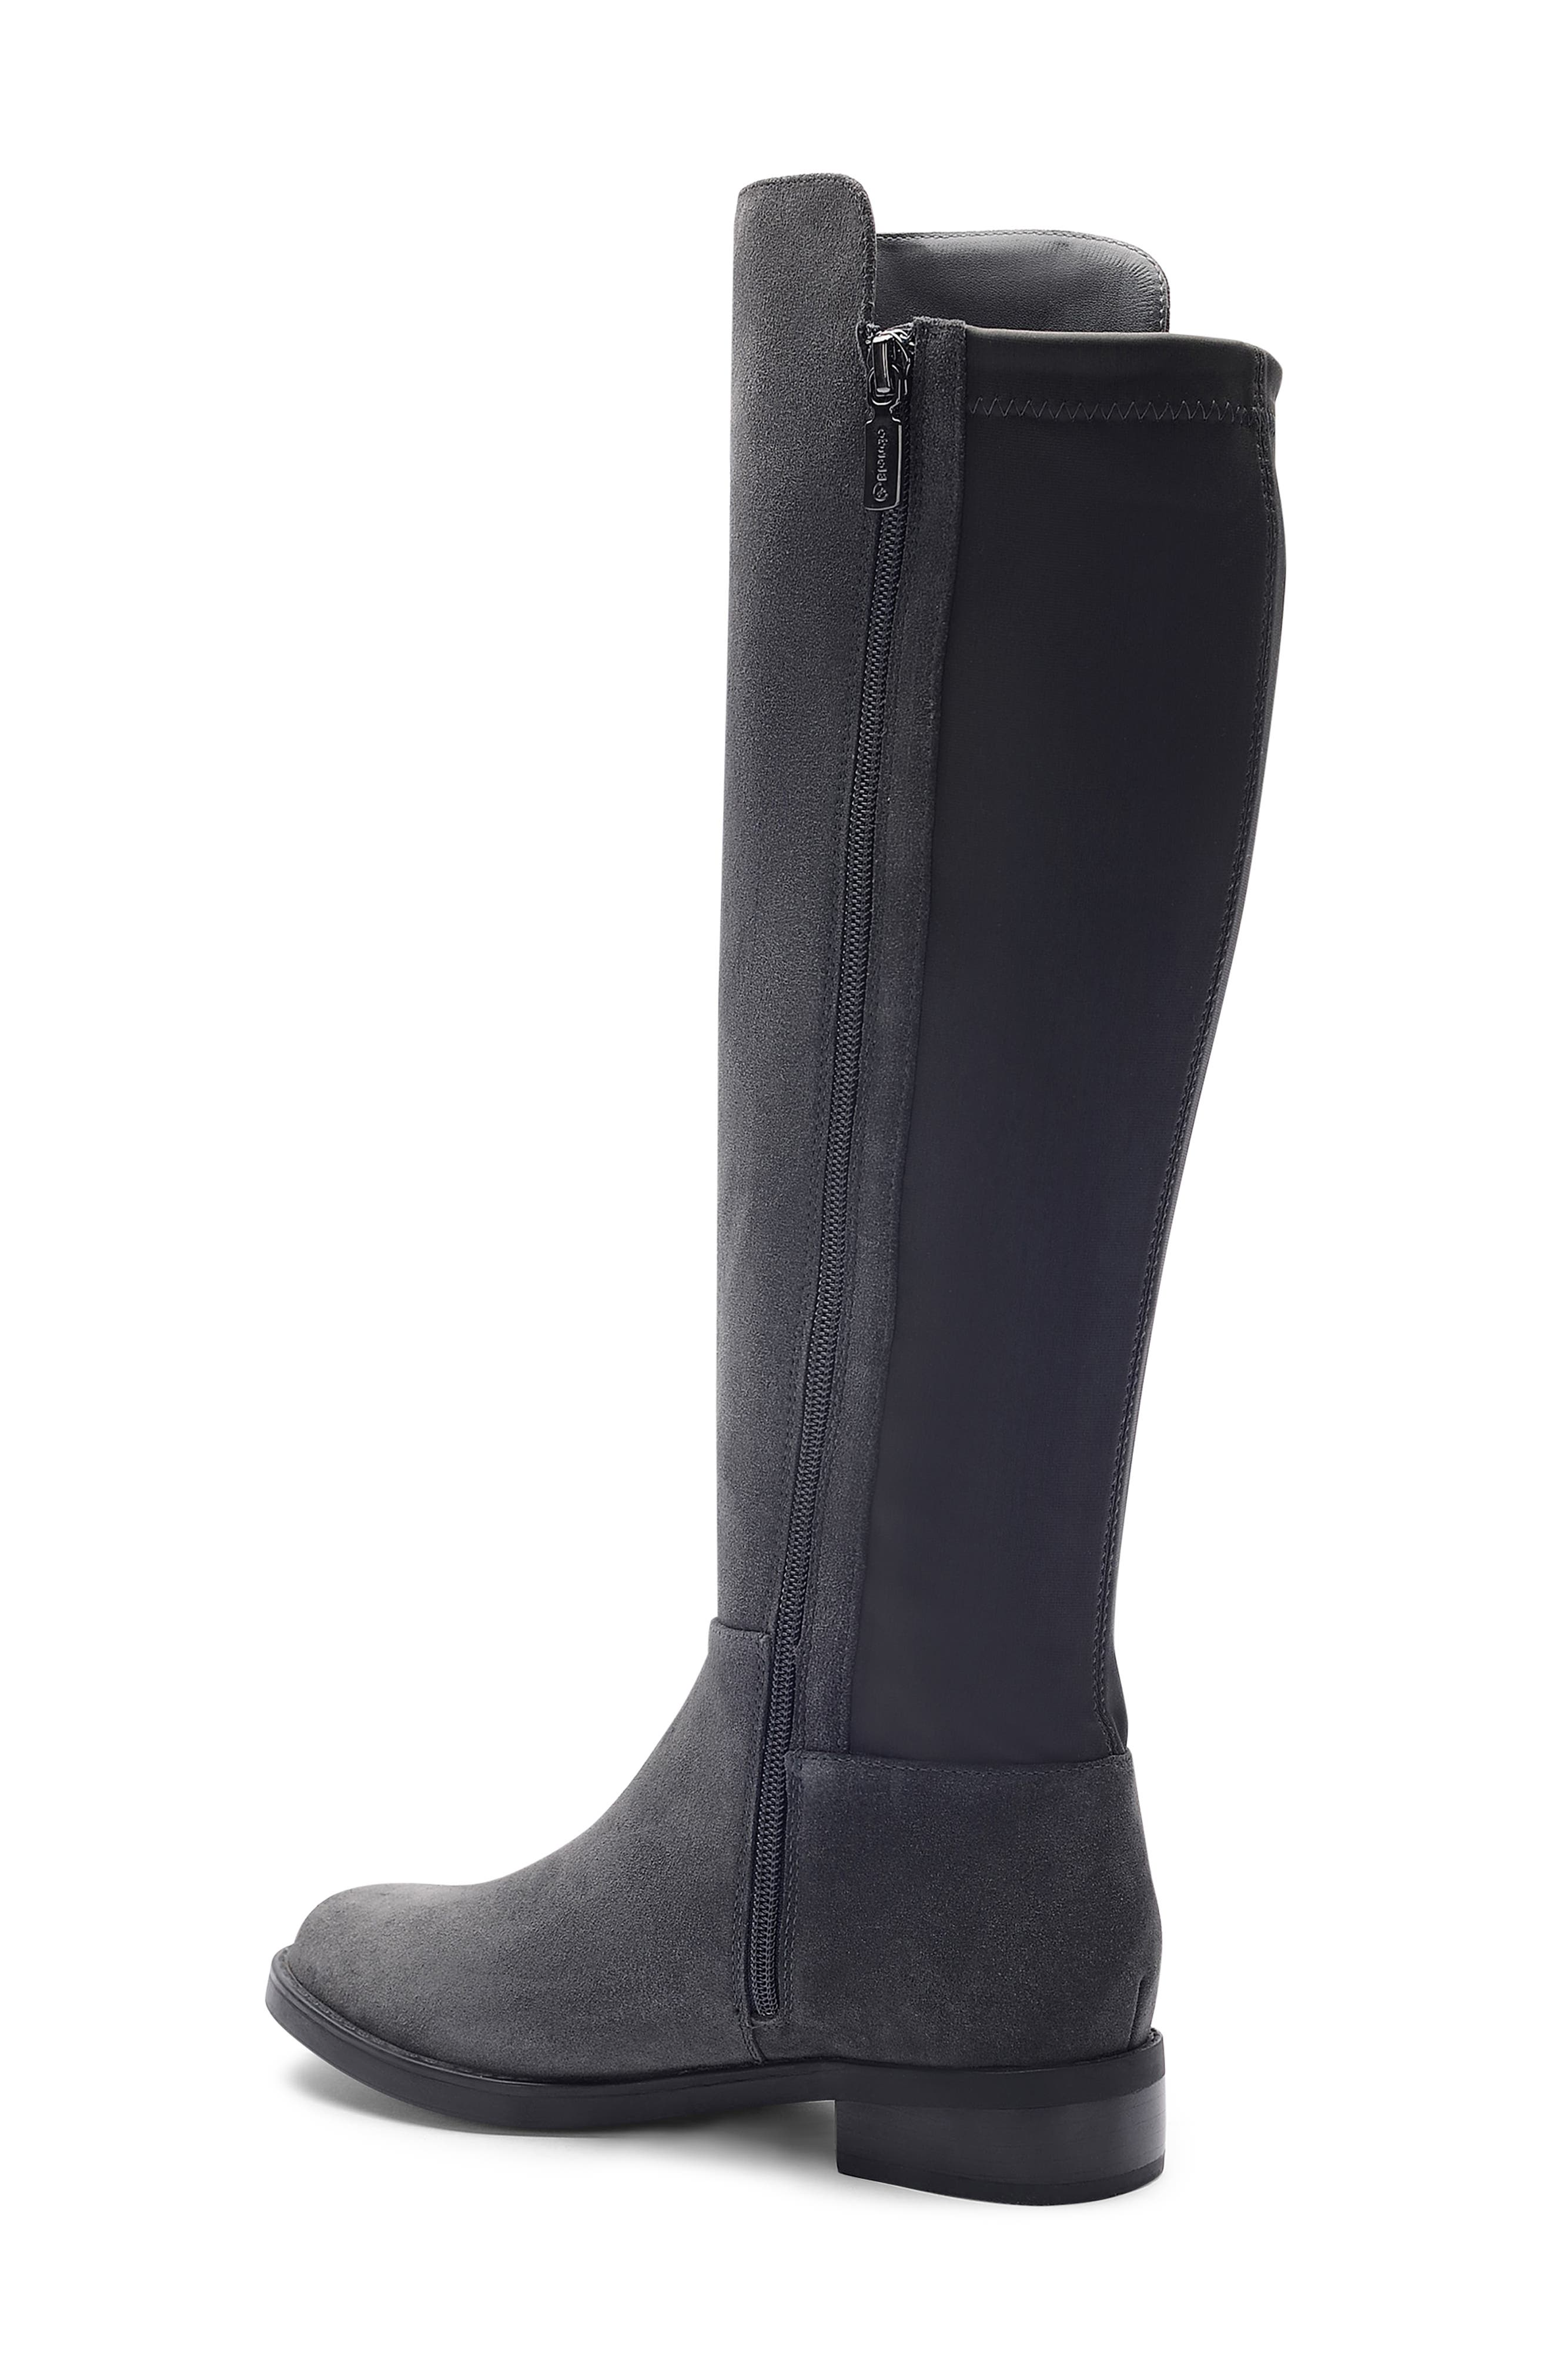 Ellie Waterproof Knee High Riding Boot,                             Alternate thumbnail 2, color,                             DARK GREY SUEDE